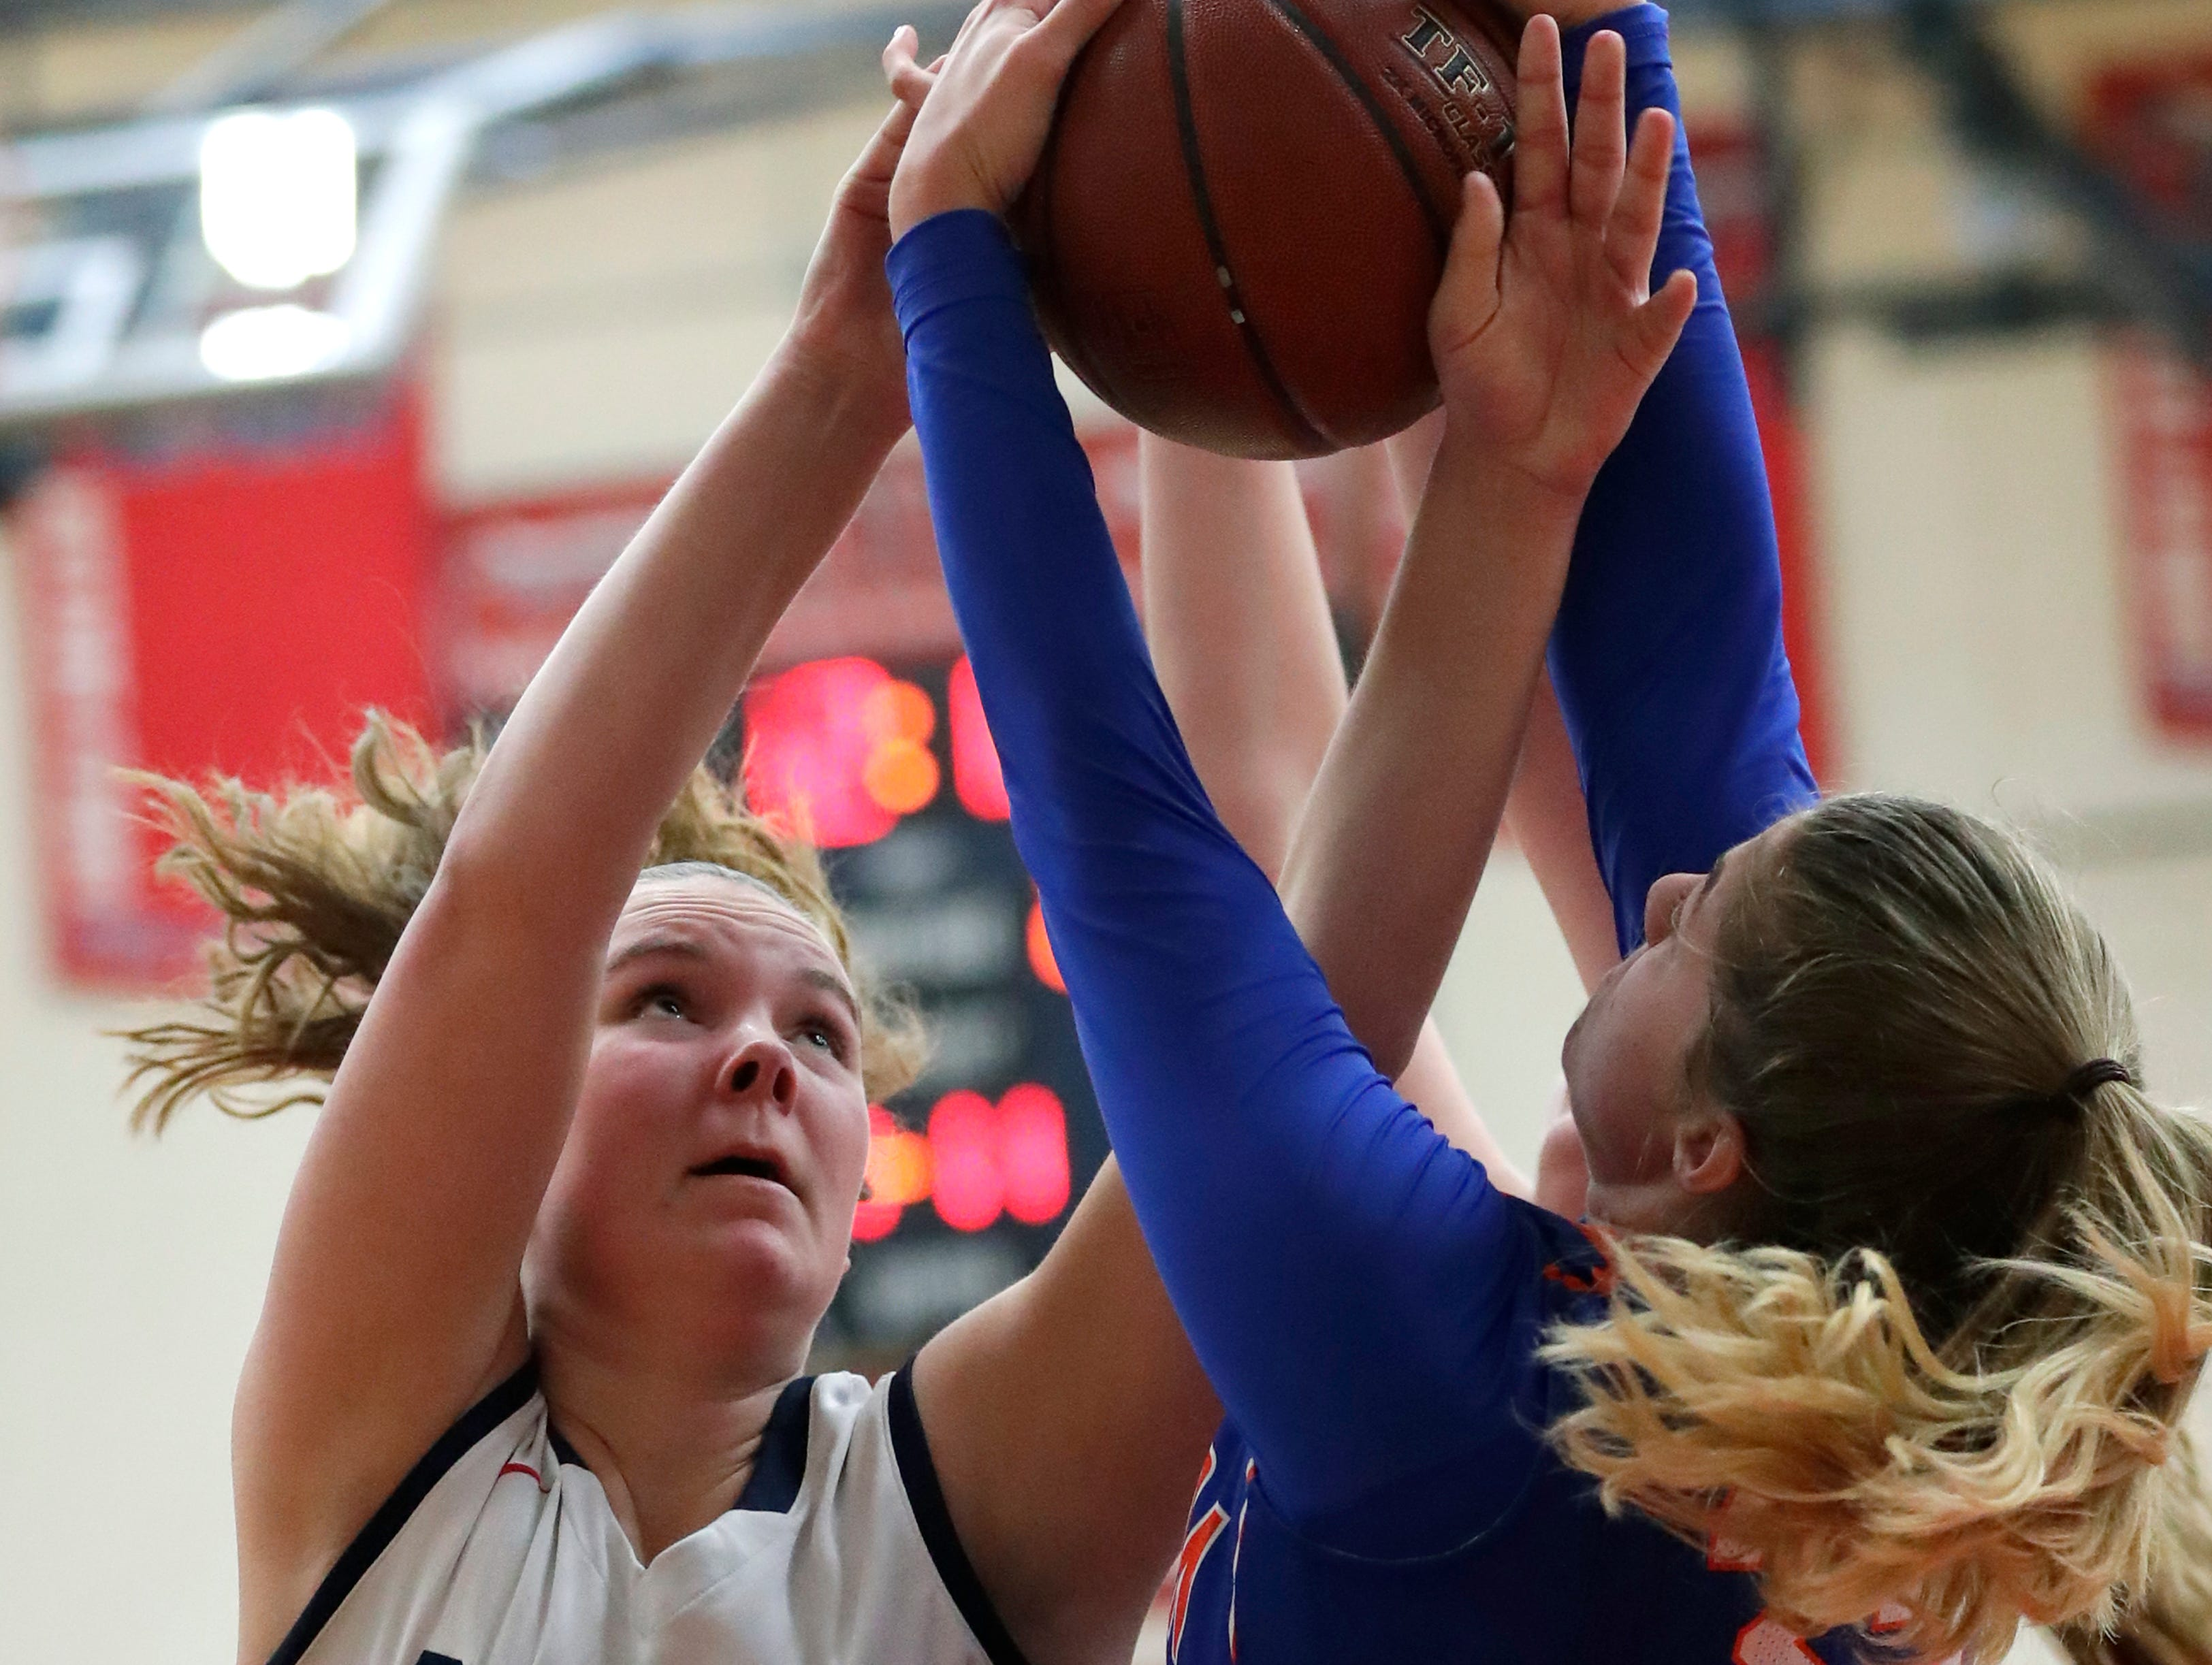 Appleton East High School's Lily Wendland (35) battles for a rebound against Appleton West High School's Sydney Gehl (35) during their girls basketball game Friday, January 11, 2019, at Appleton East High School in Appleton, Wis. 